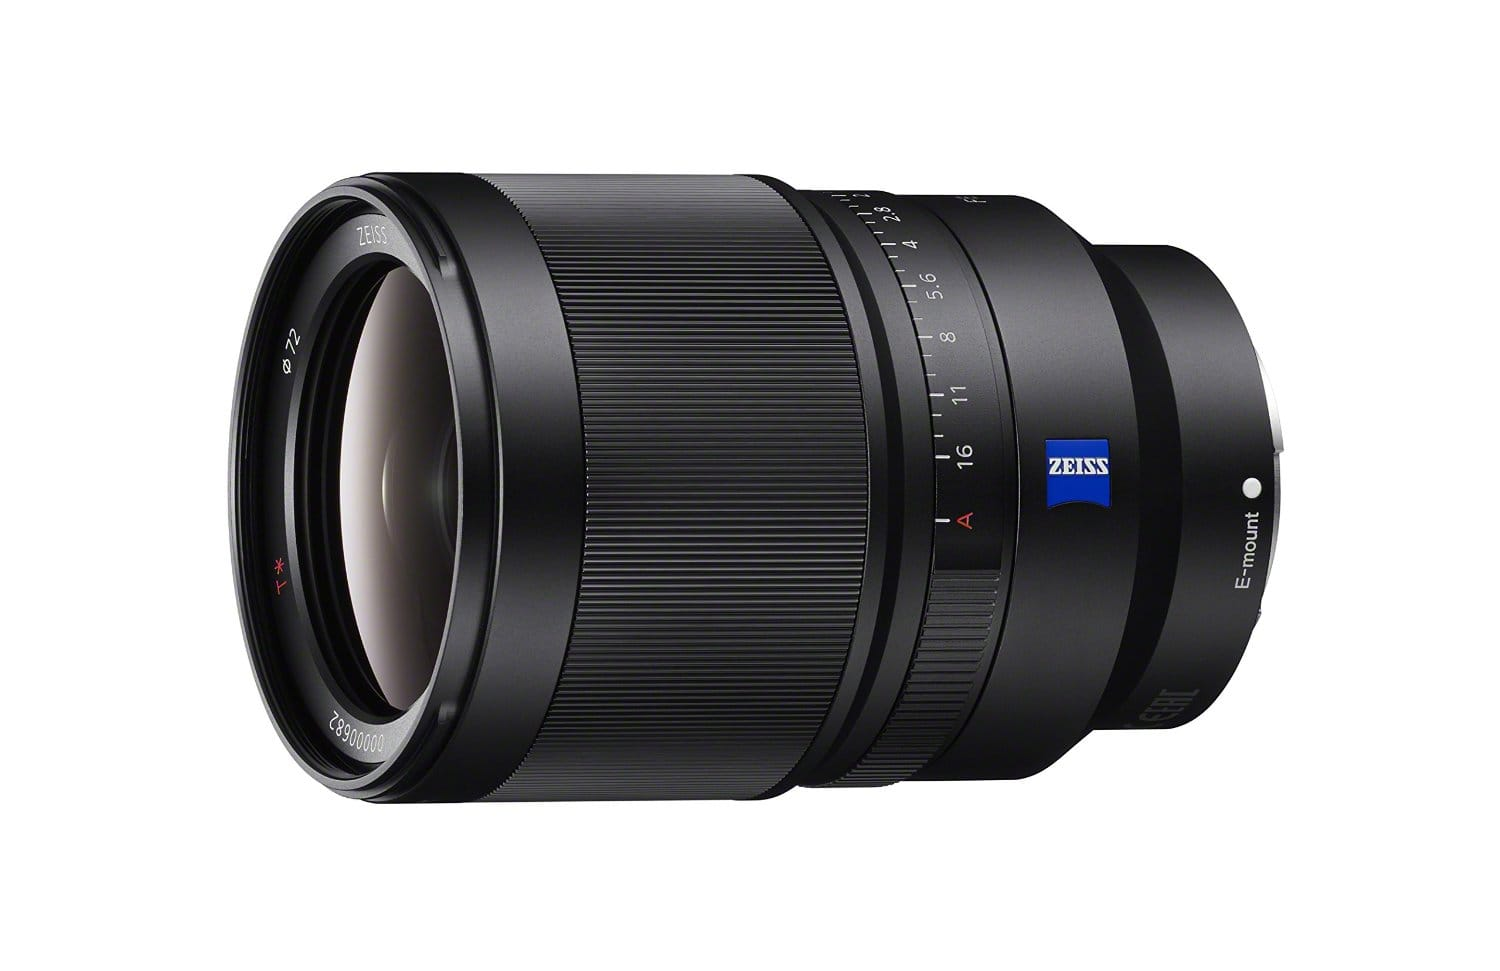 Zeiss Distagon 35mm Announced